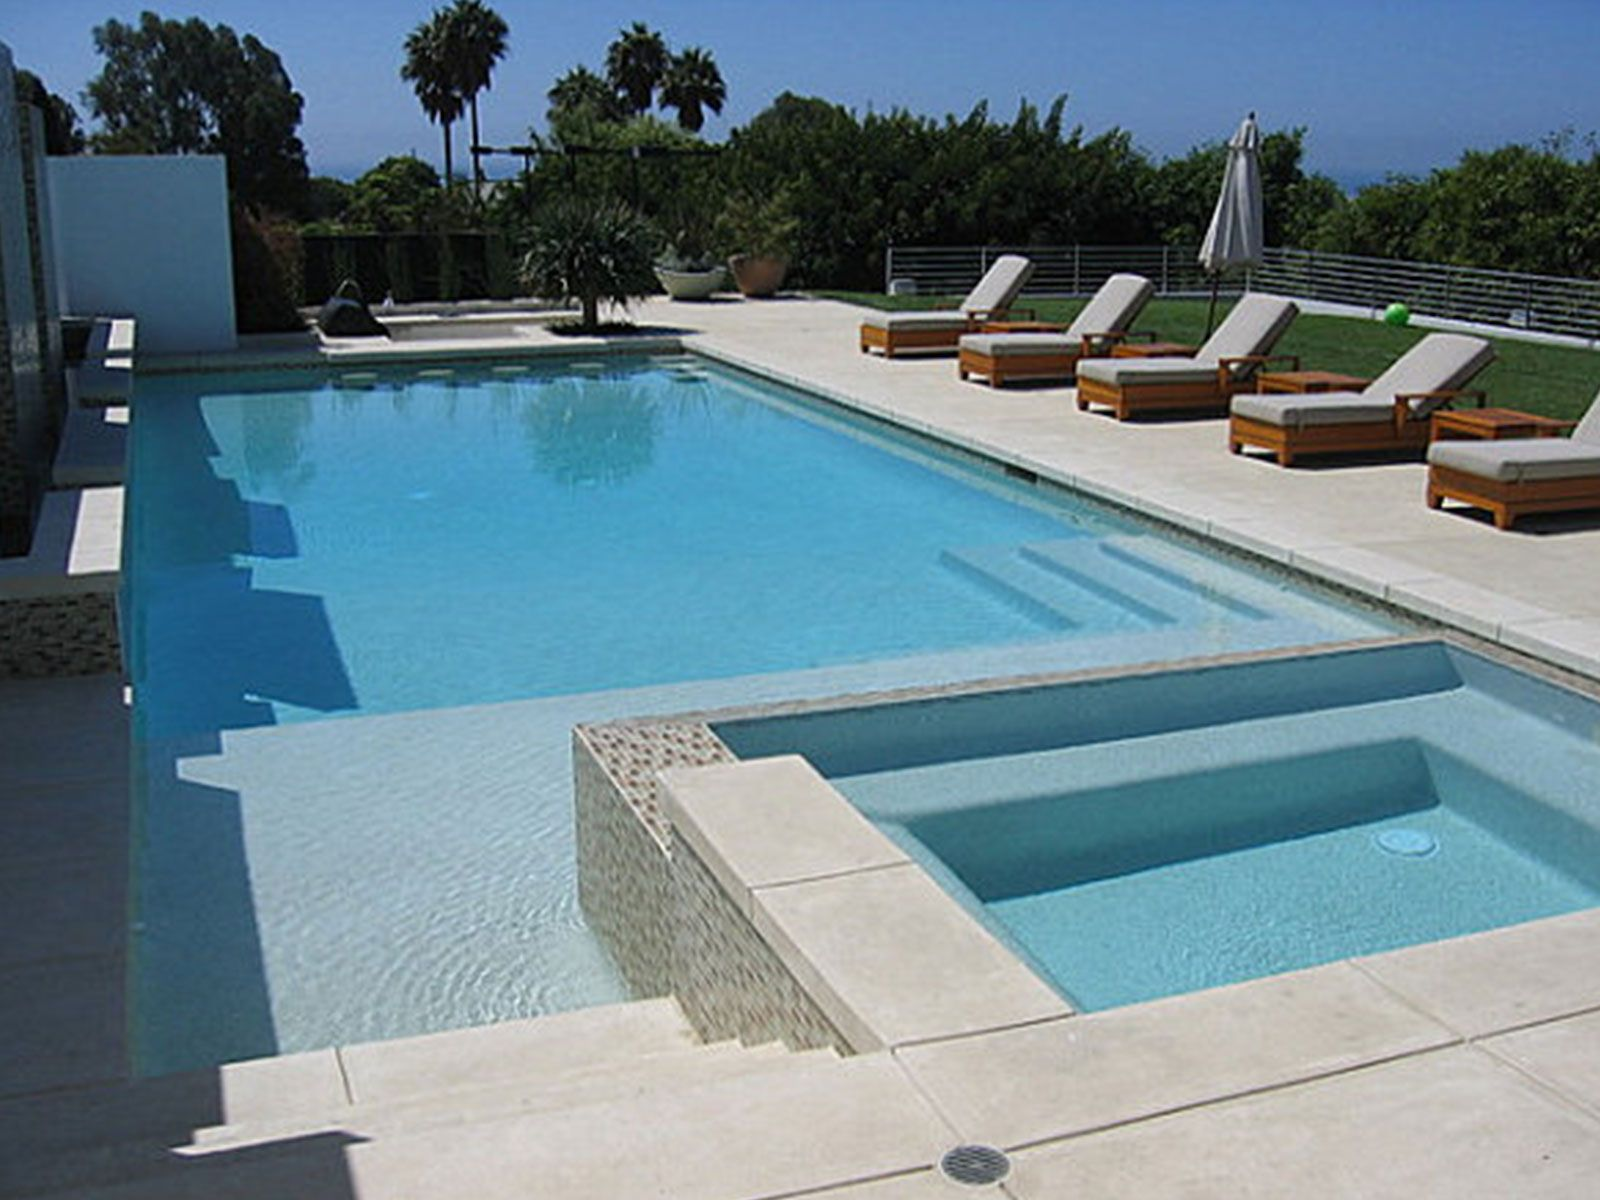 Simple swimming pool design image modern creative swimming for Pool design virginia